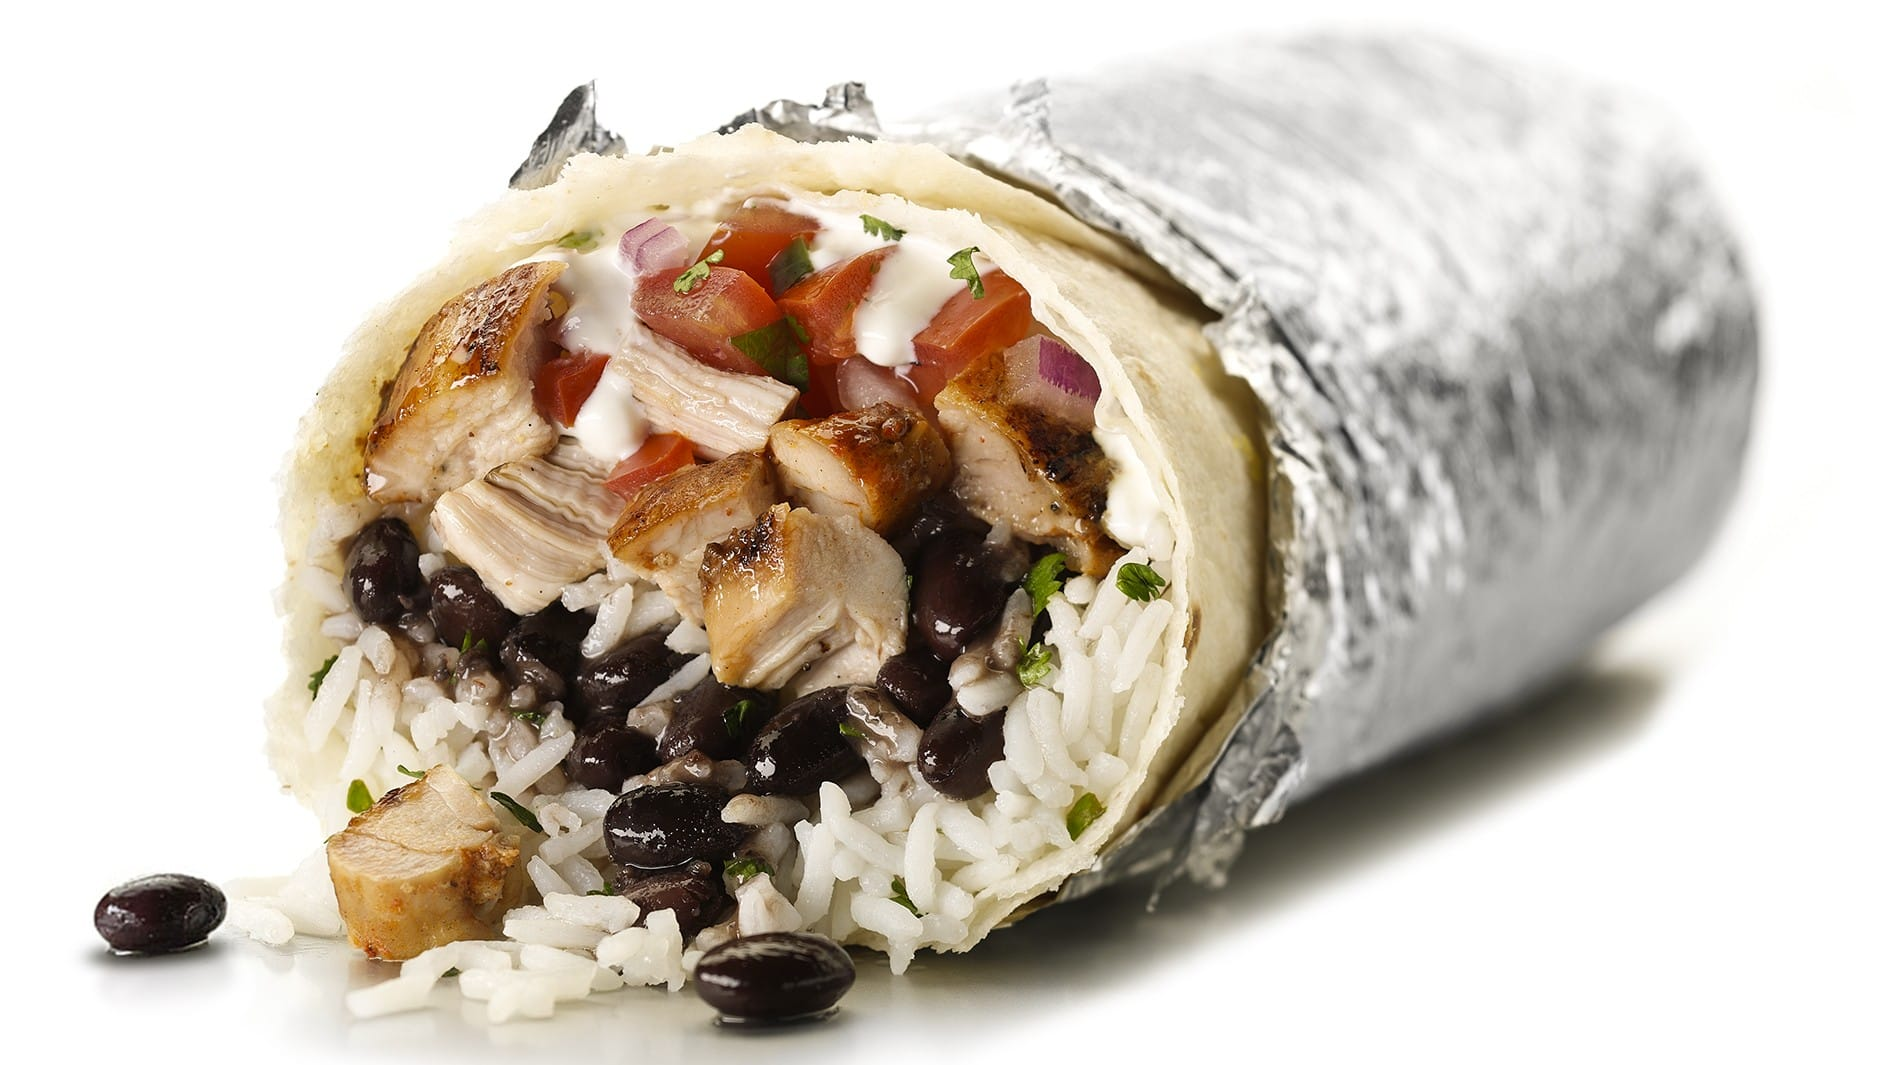 Chipotle - BOGO coupon for playing a game starting July 21 to August.